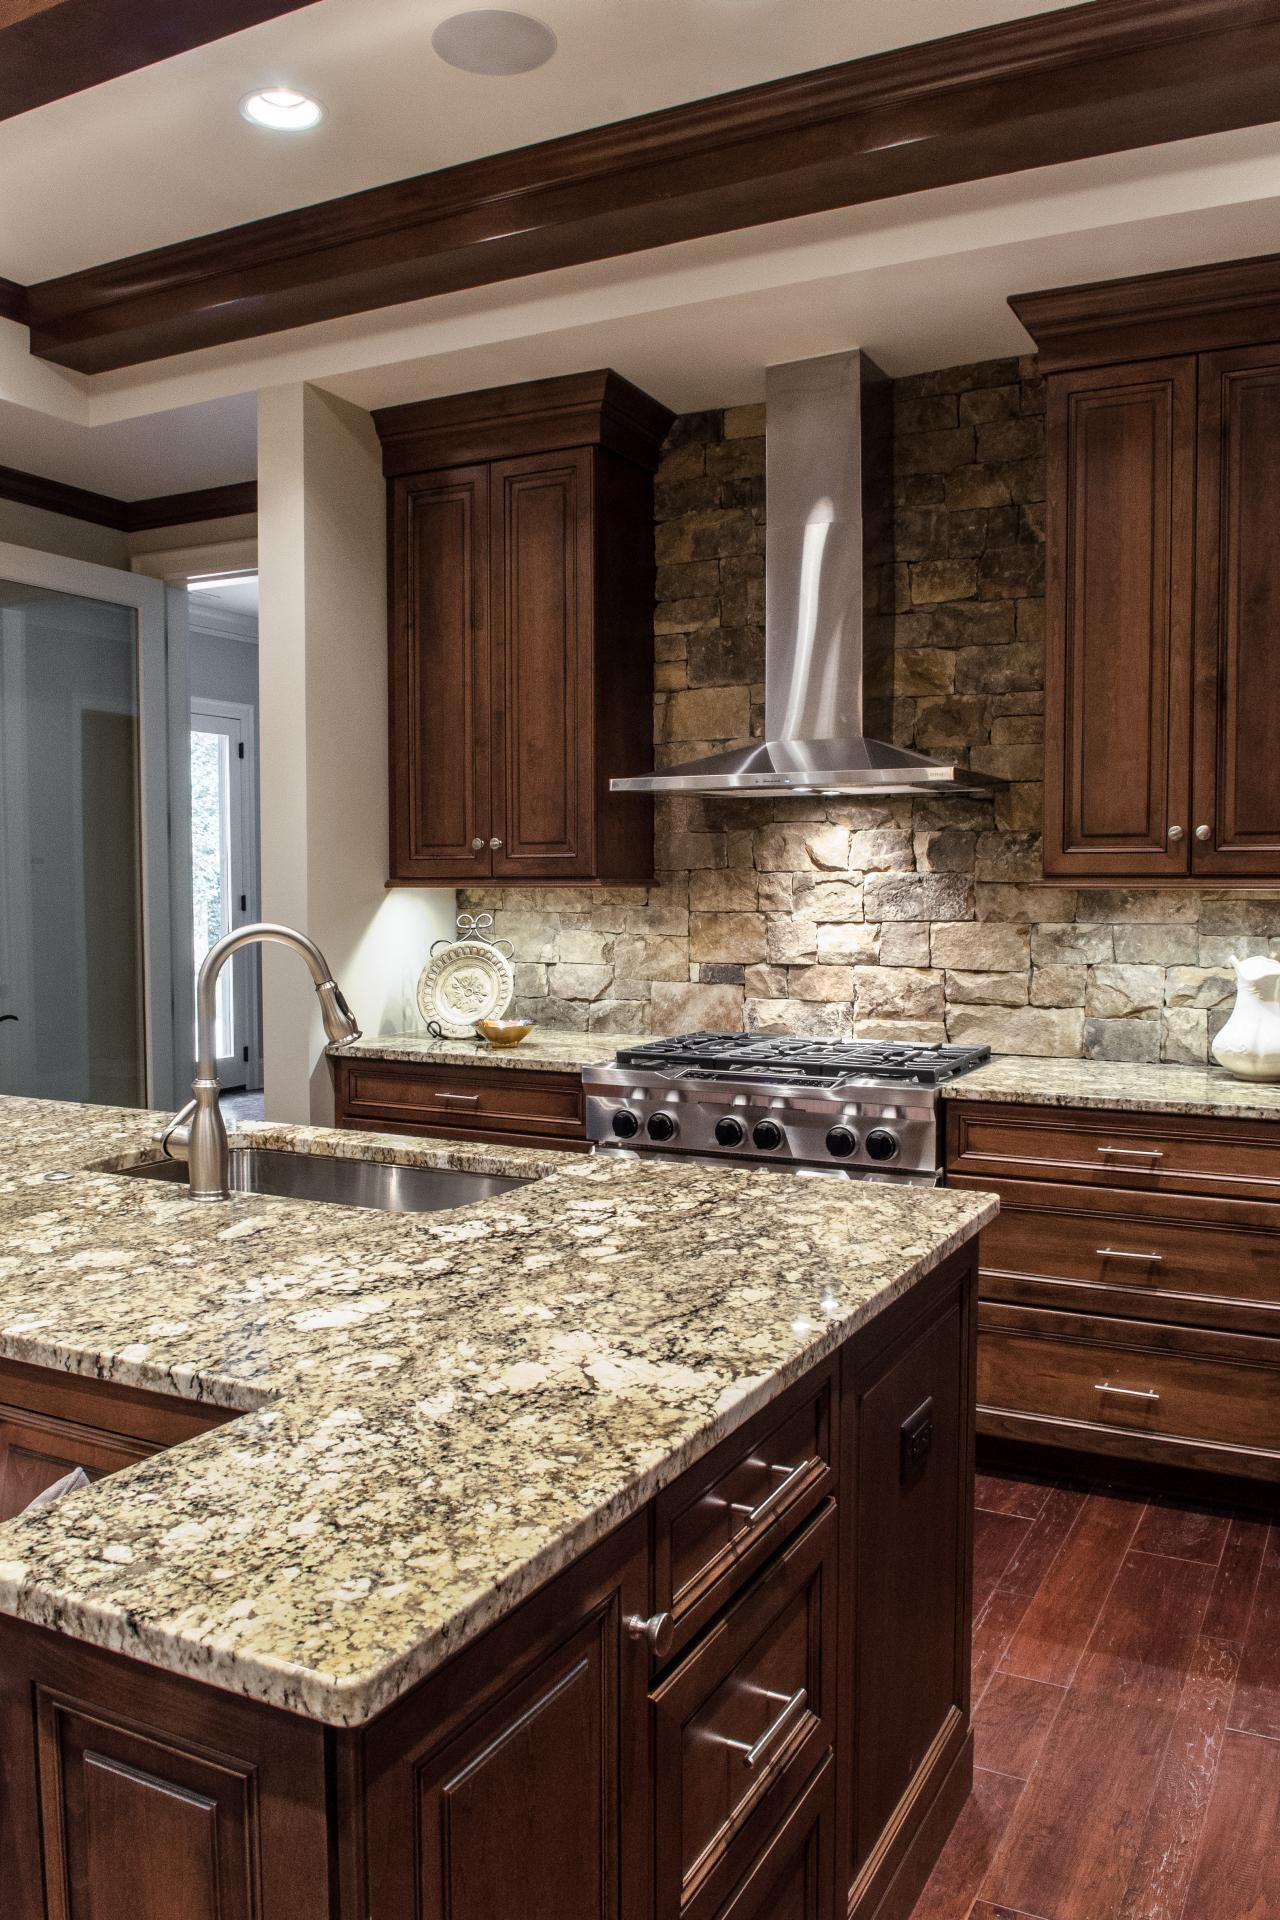 Custom wood cabinets and gray stone countertops are topoftheline finishes featured in this